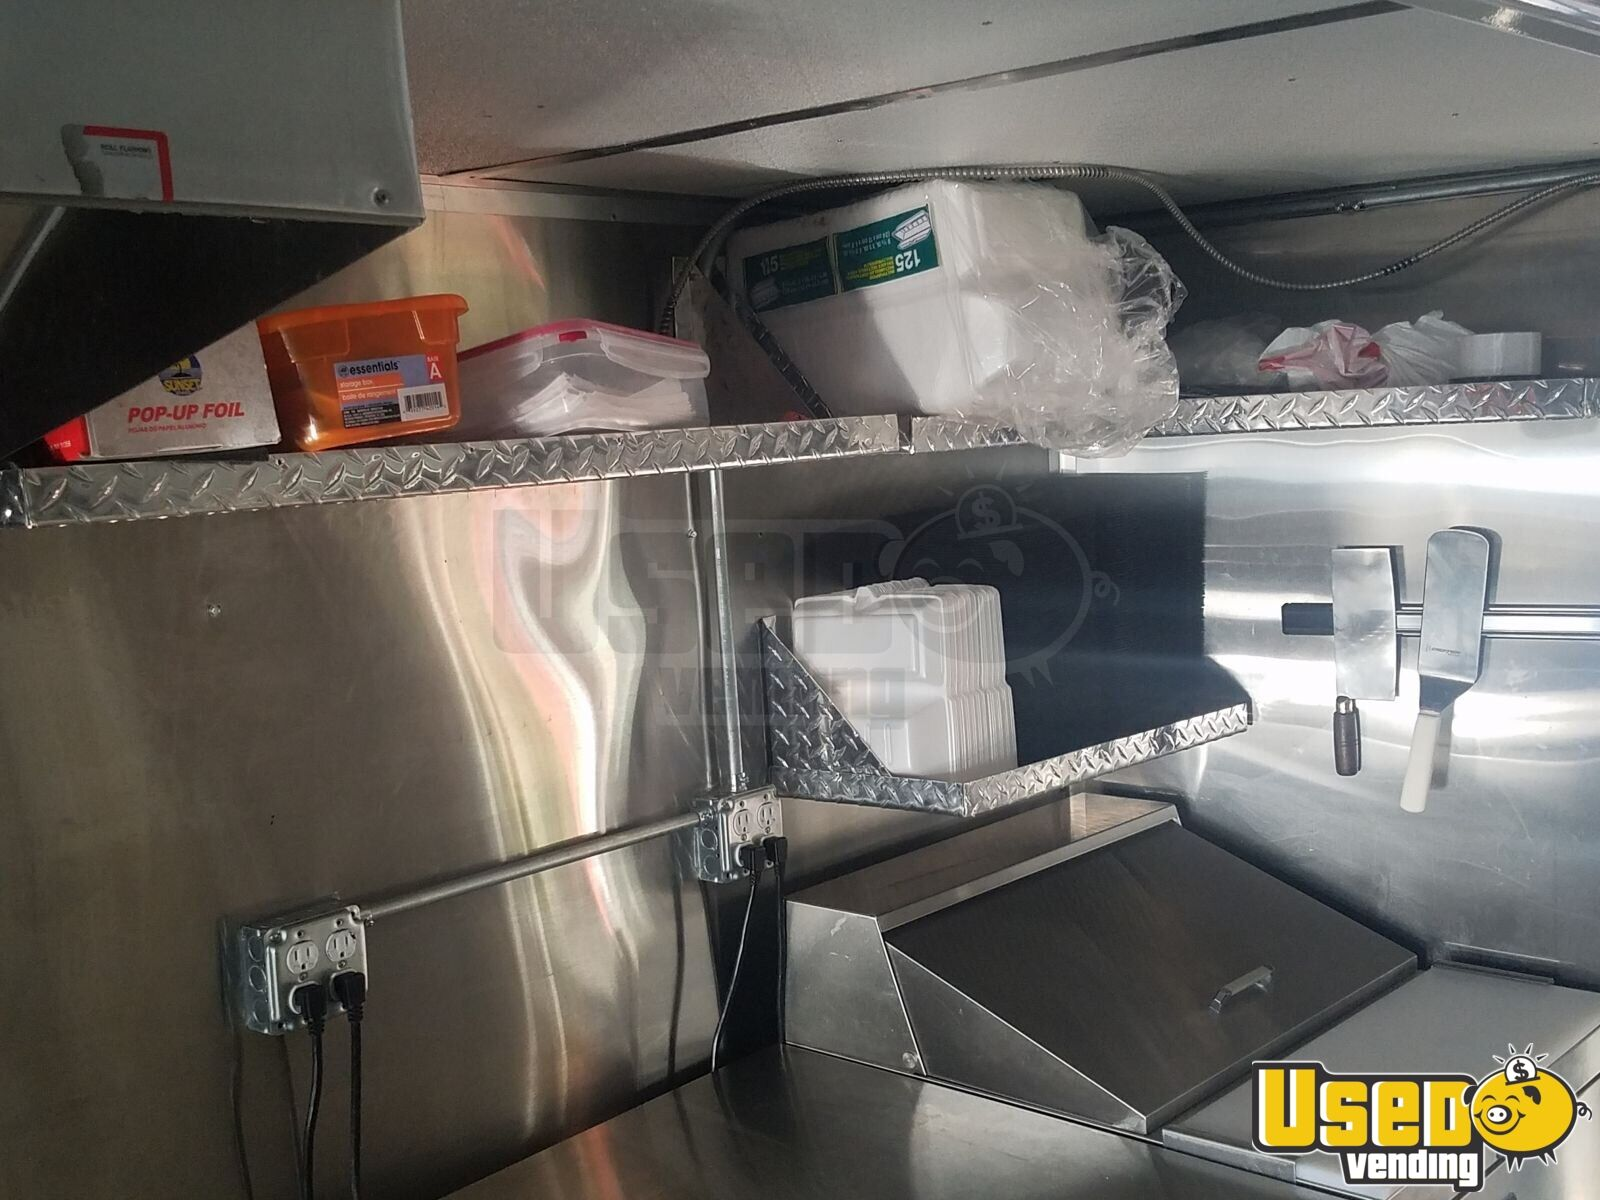 2000 Freightliner All-purpose Food Truck Shore Power Cord Colorado Diesel Engine for Sale - 10